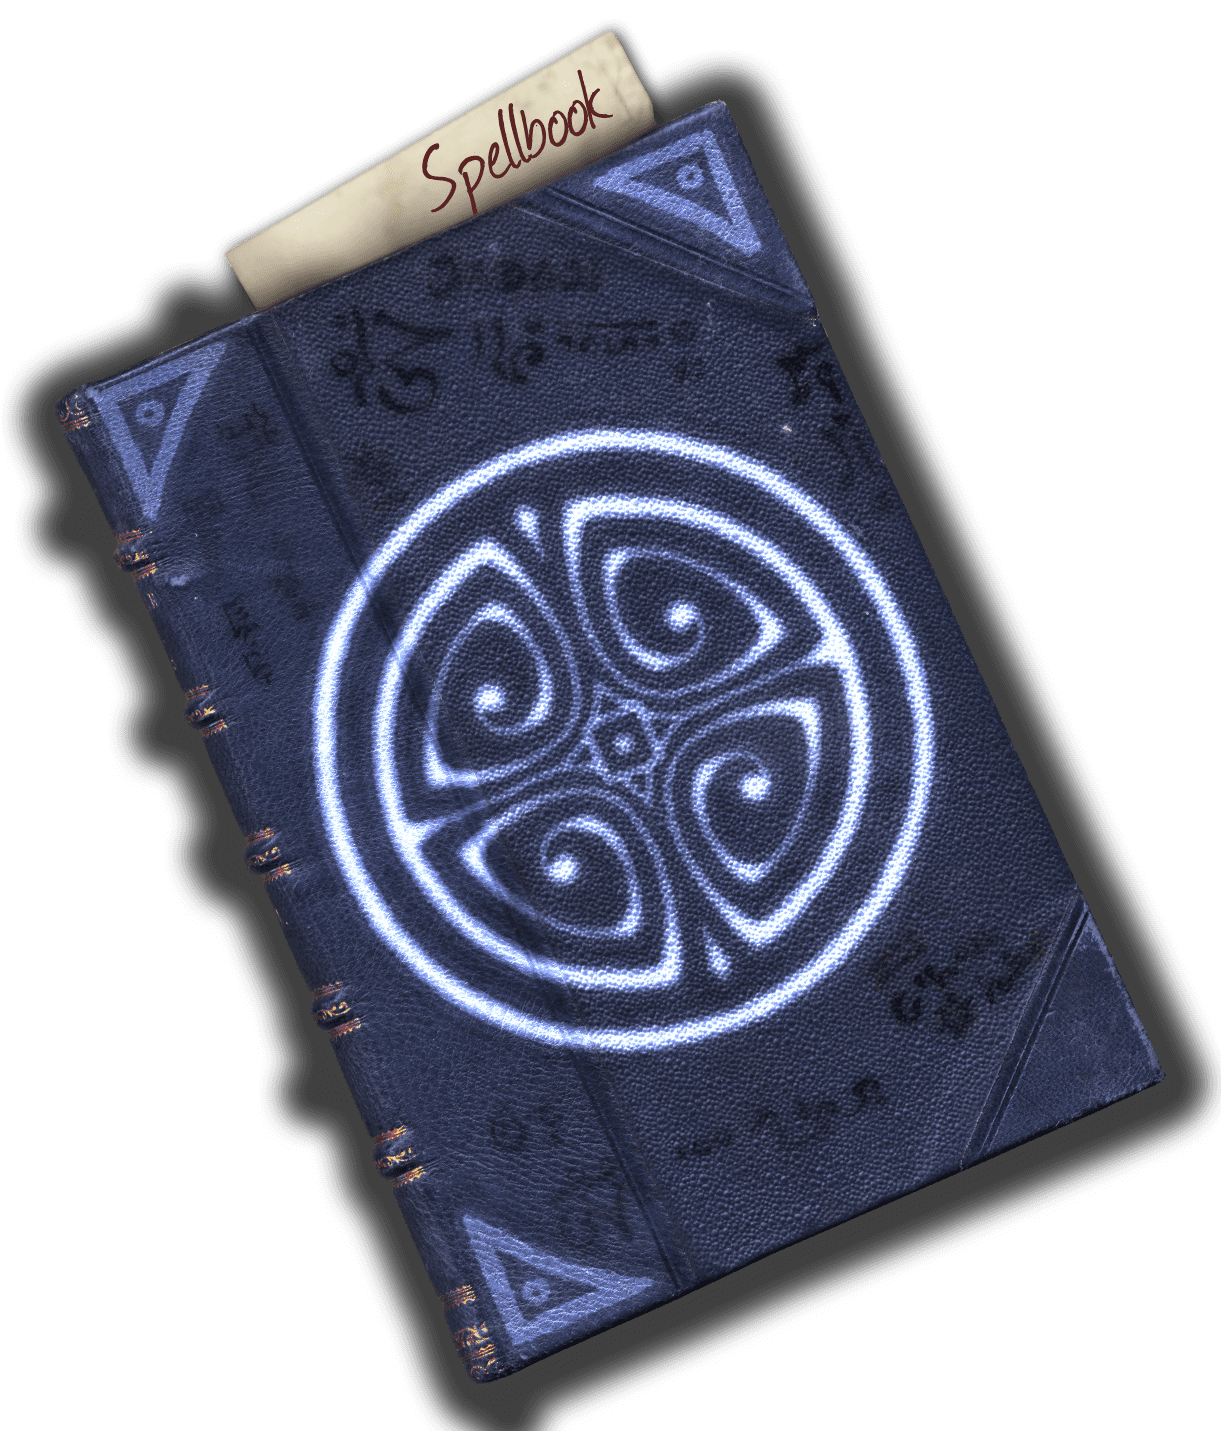 spell book png